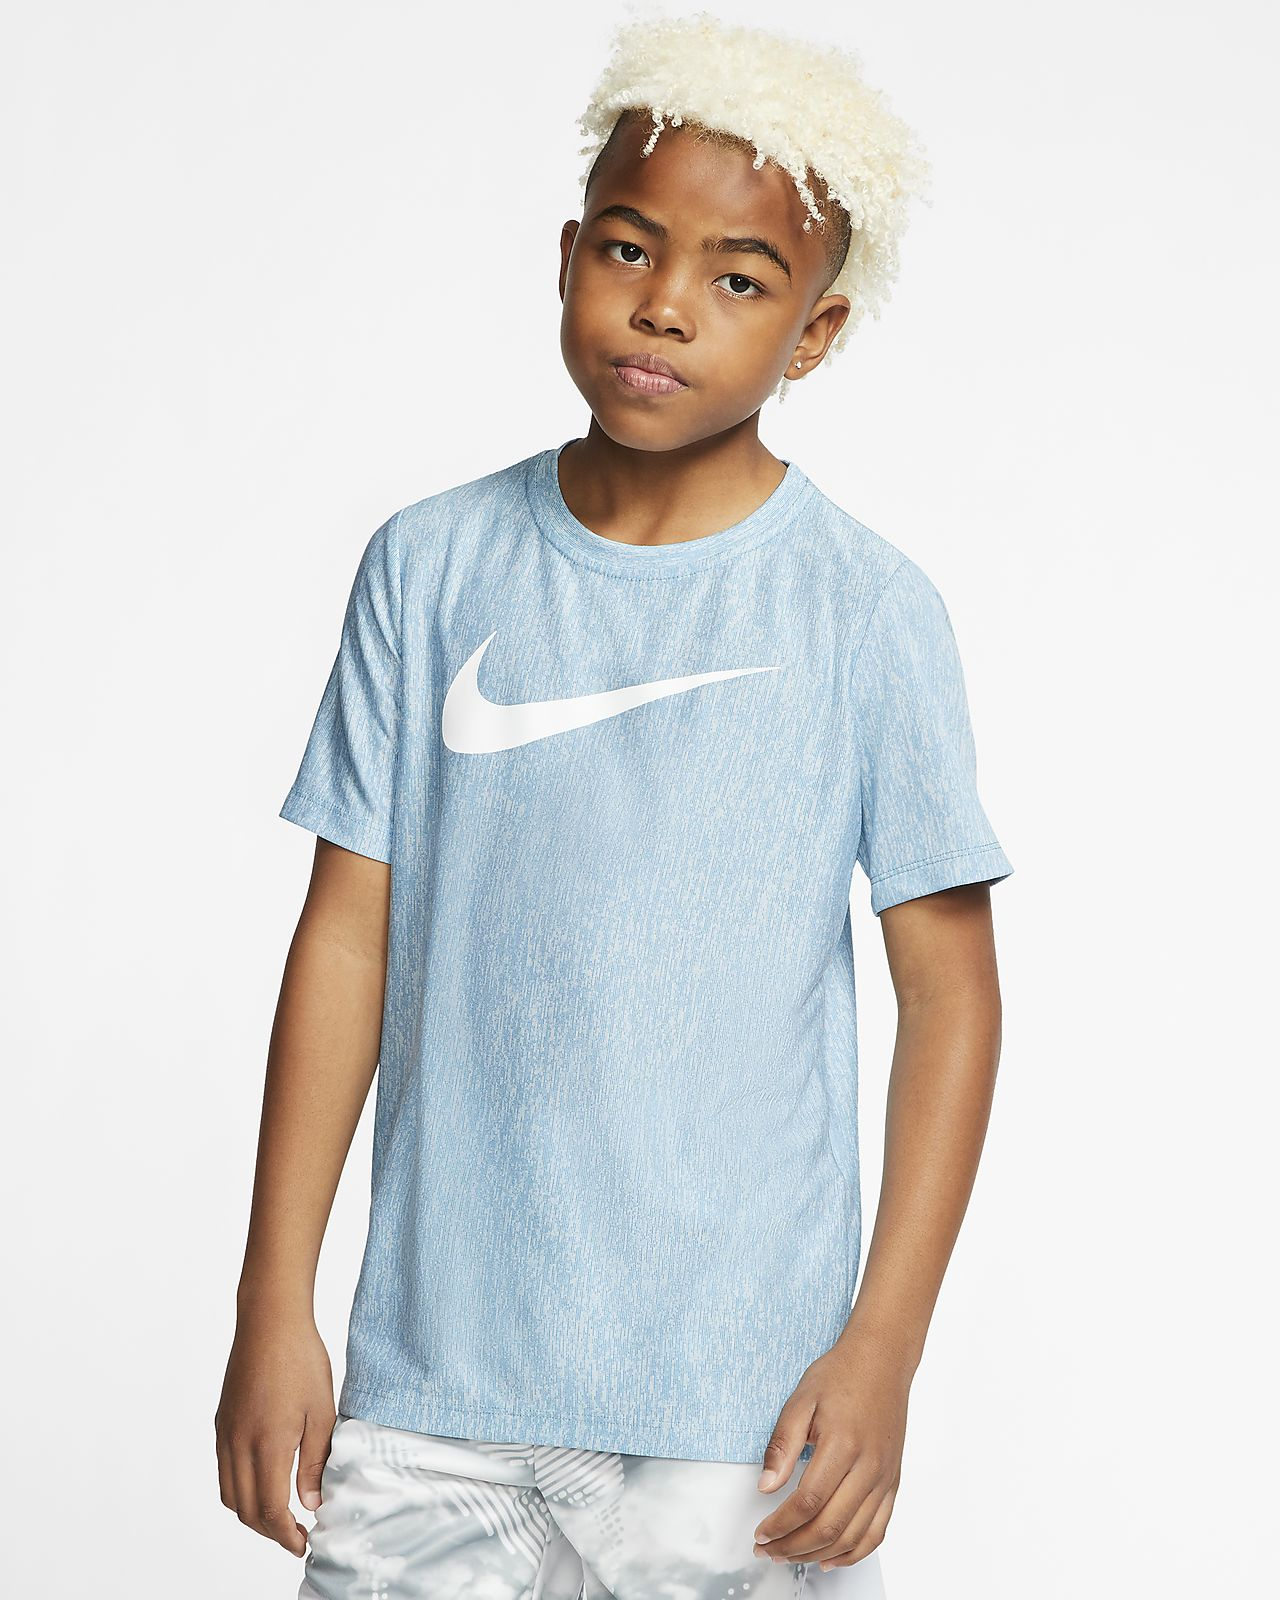 Nike Dri-FIT Boys' Short-Sleeve Training Top